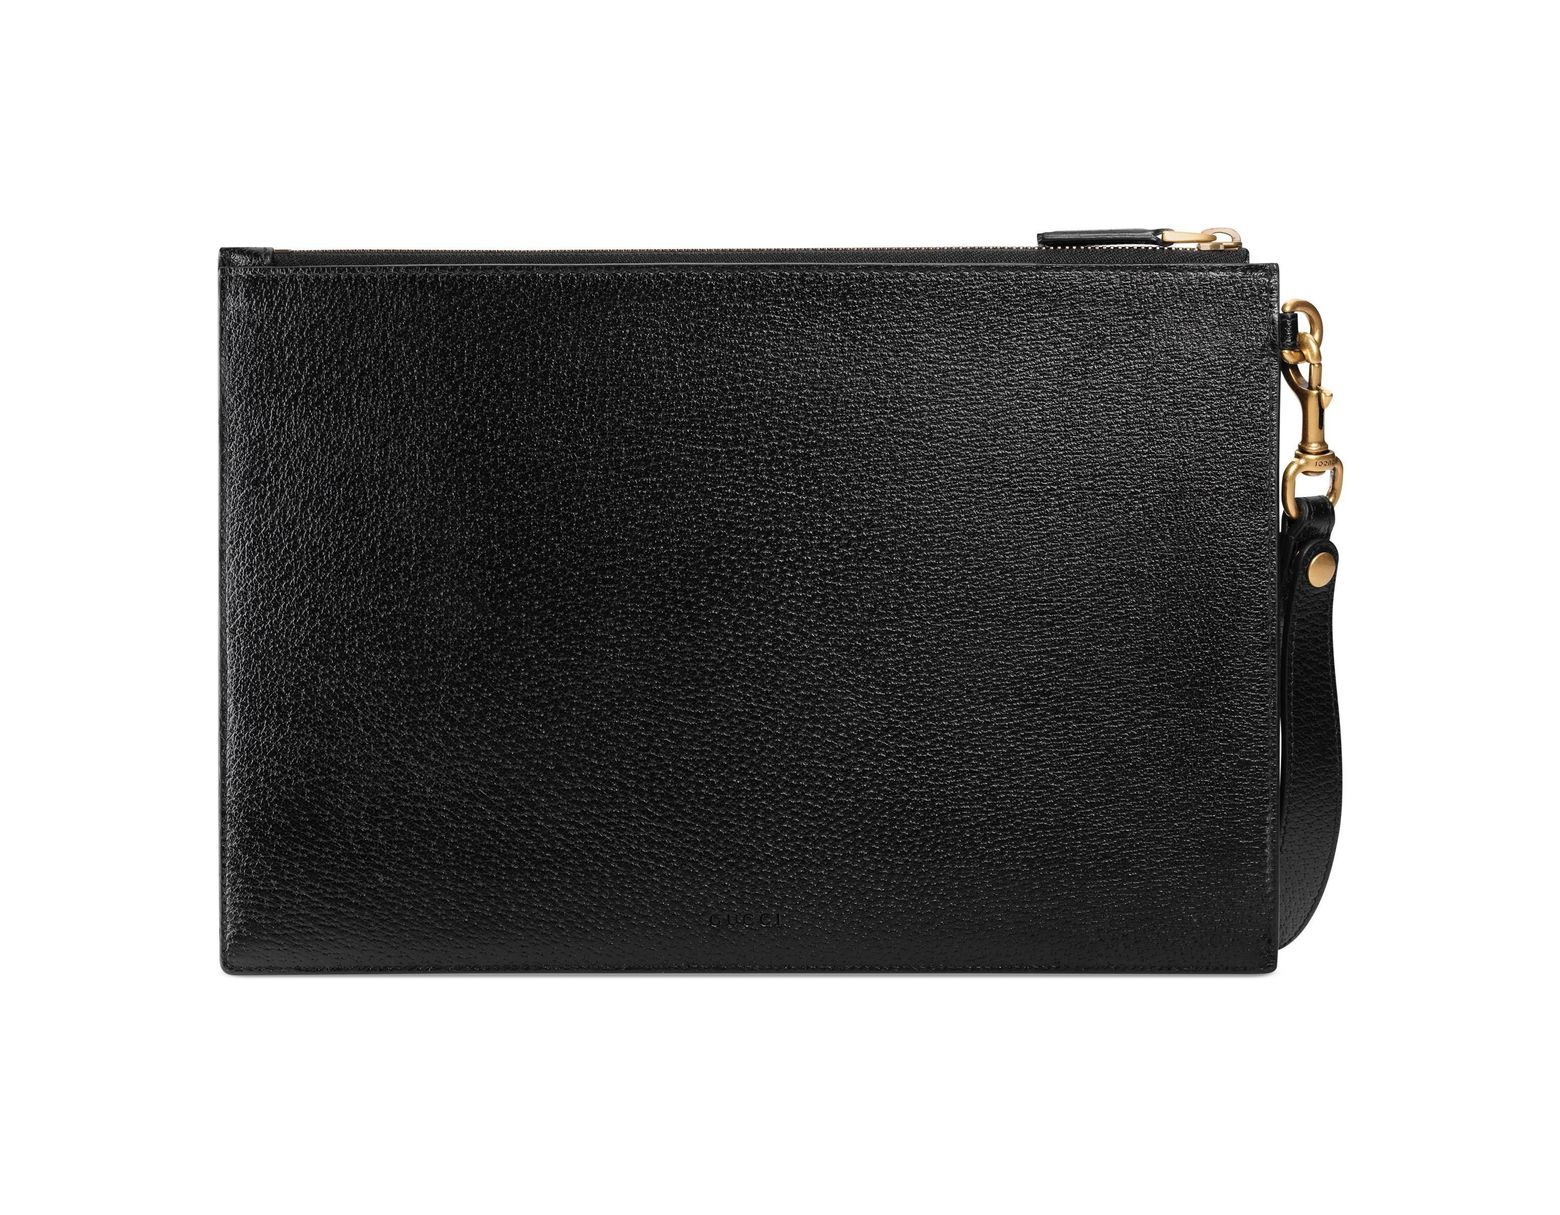 8a5f63f147 Men's Black GG Marmont Leather Pouch